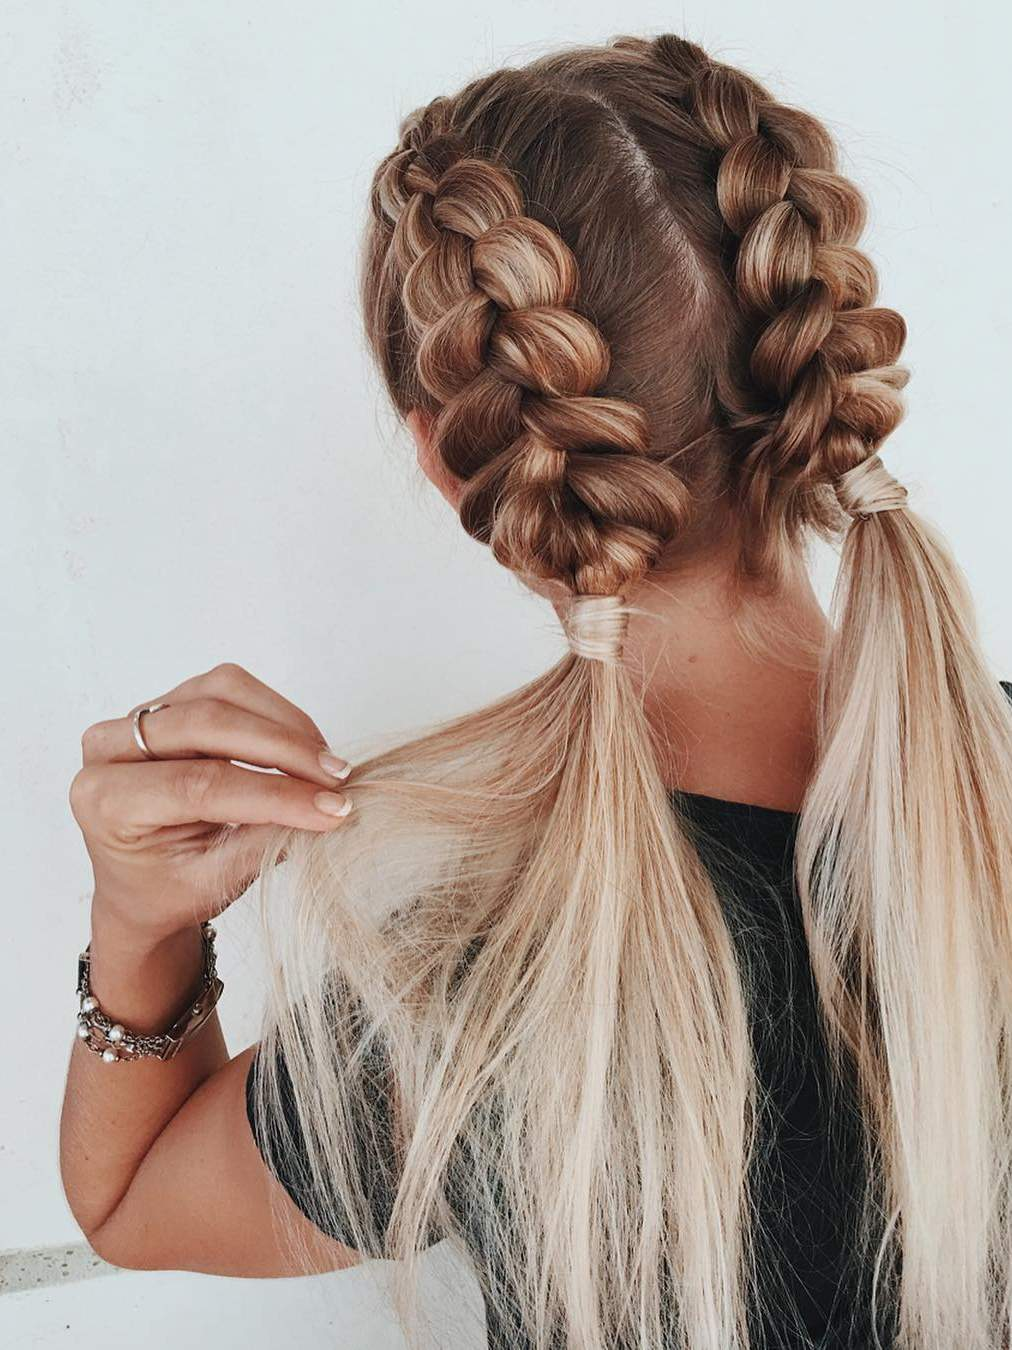 7 braided hairstyles people